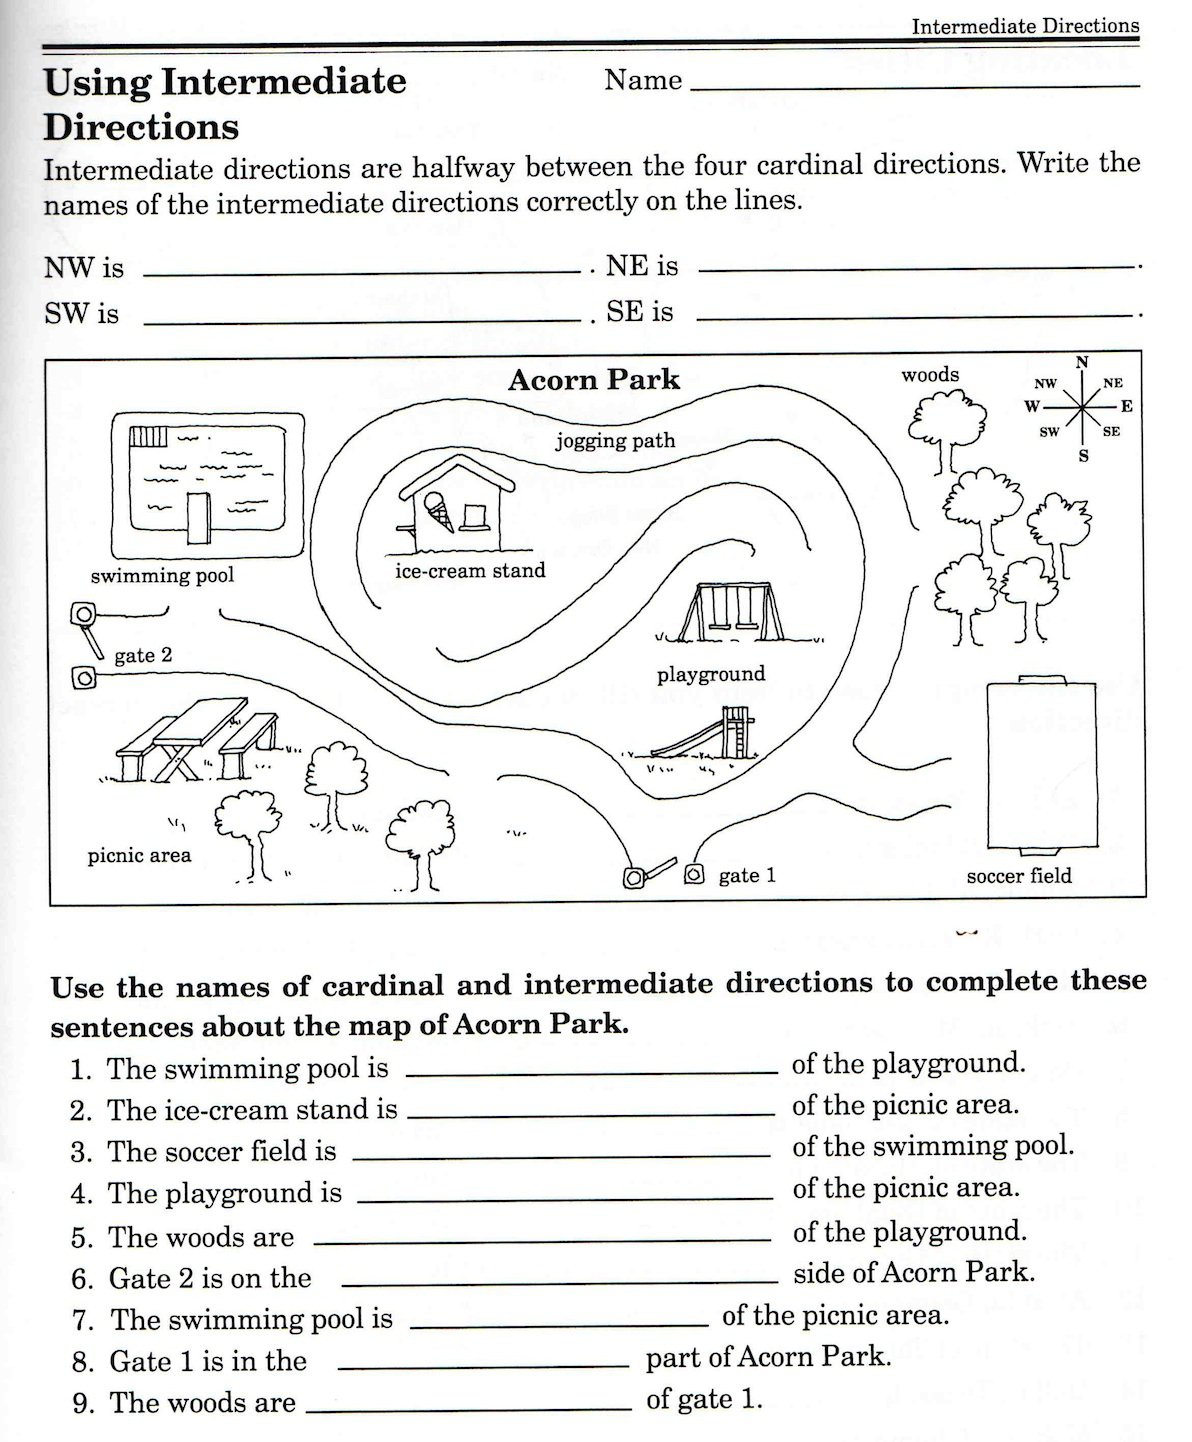 Intermediate Directions Worksheets